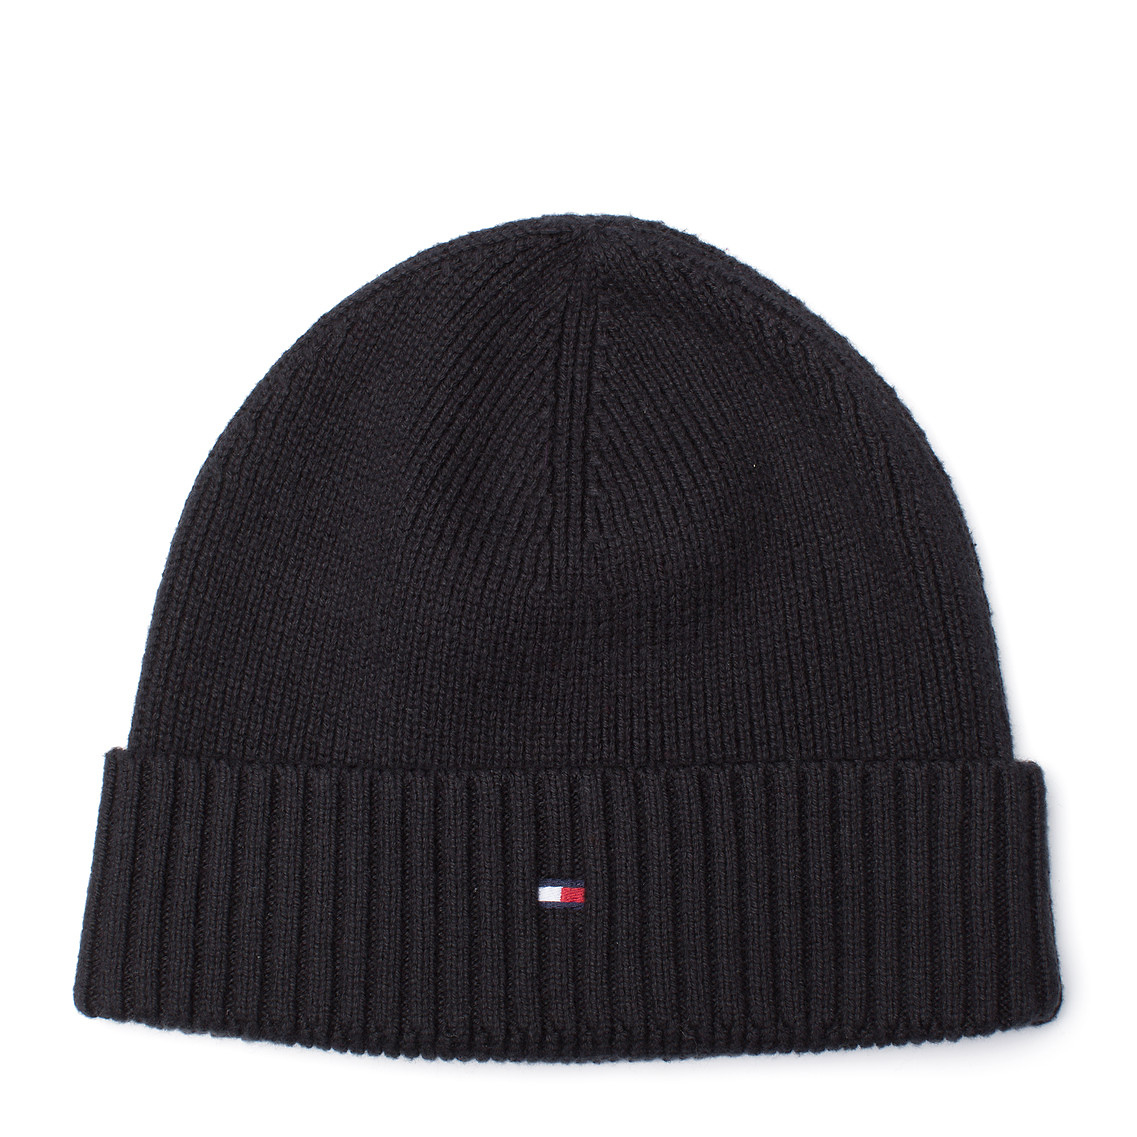 Tommy Hilfiger Pima Beanie in Black for Men - Lyst 313af4638d6